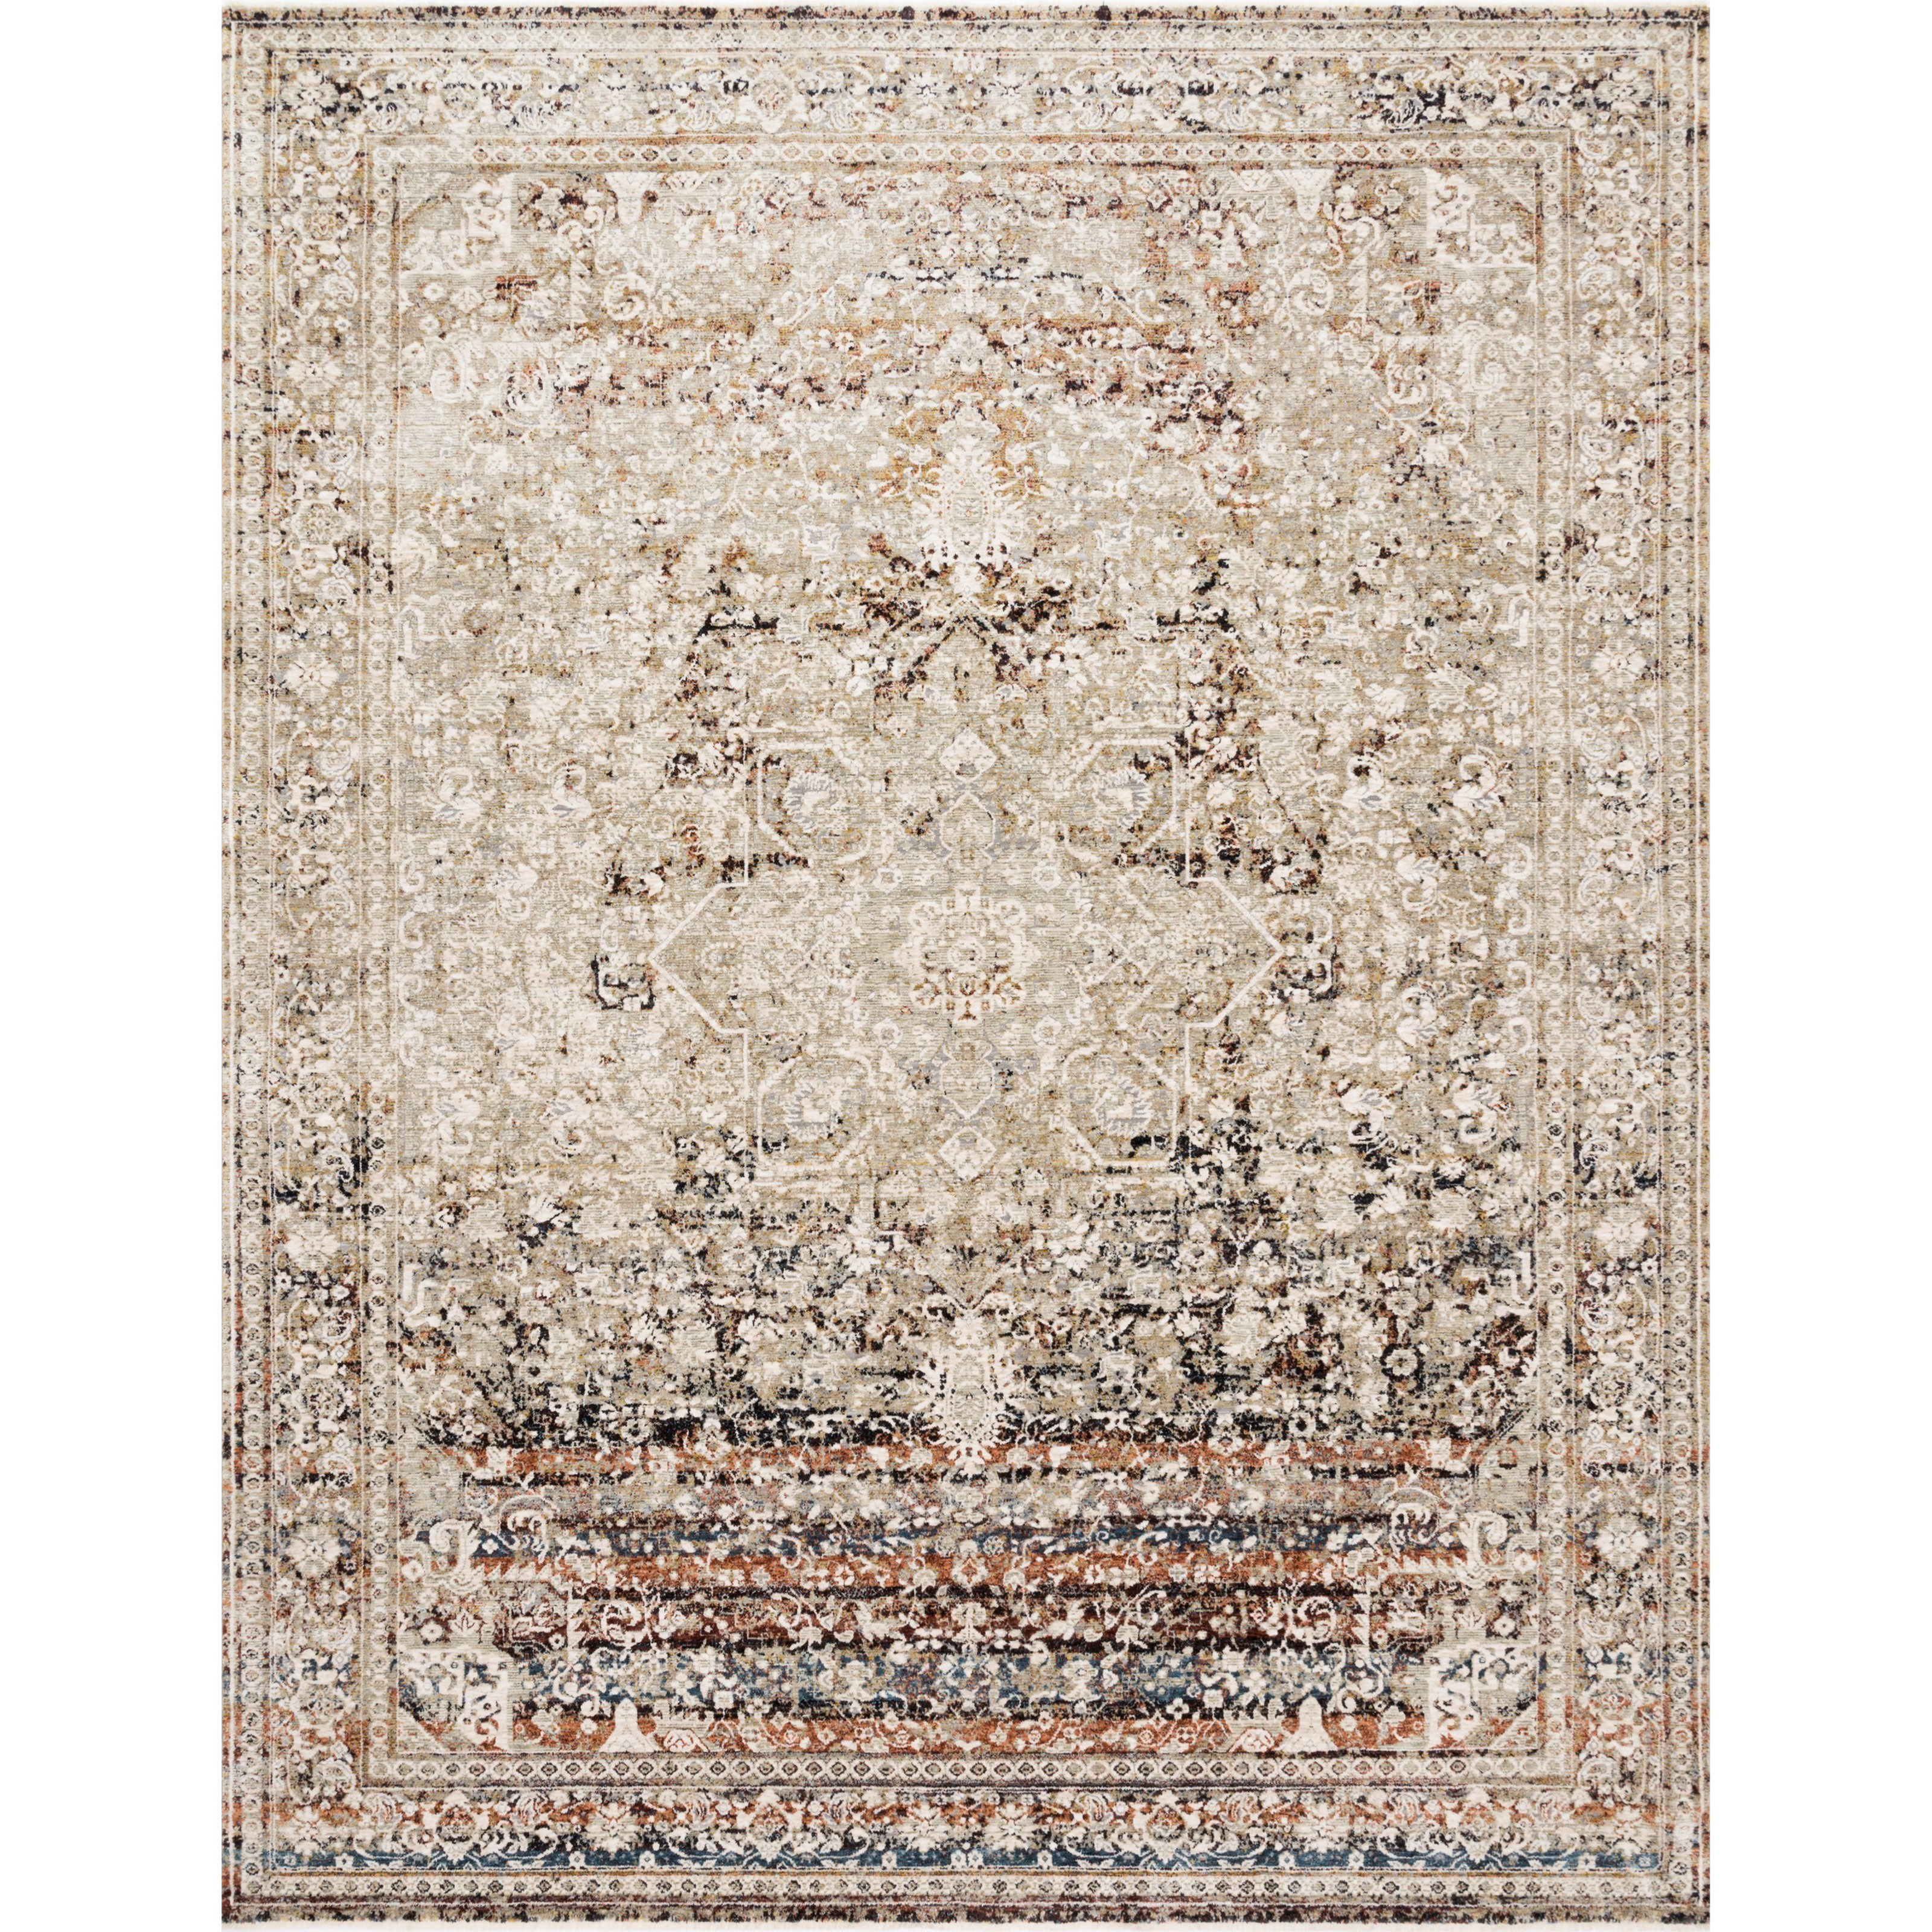 """Theia 1'6"""" x 1'6""""  Taupe / Brick Rug by Loloi Rugs at Virginia Furniture Market"""